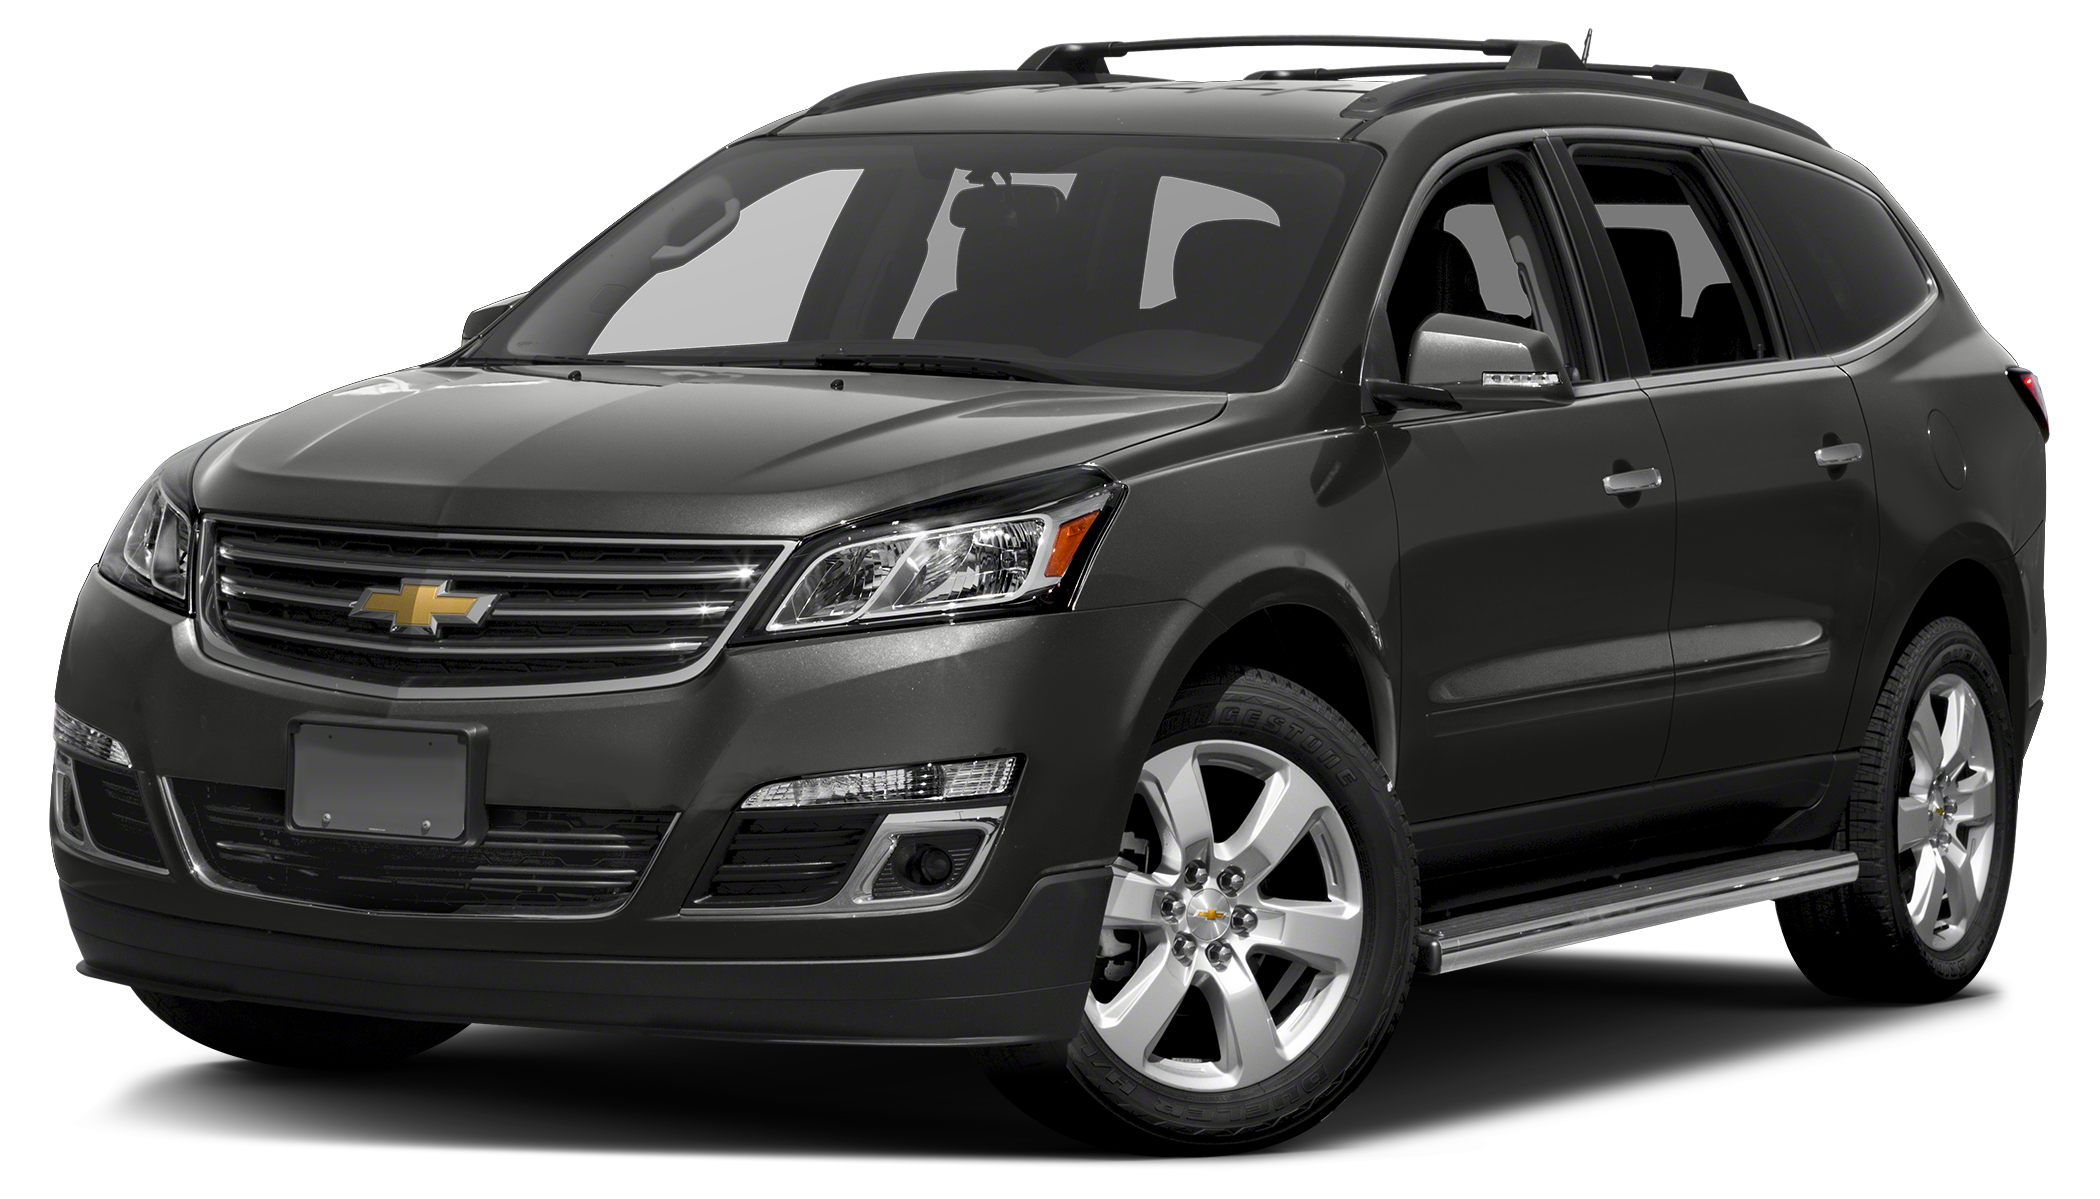 2016 Chevrolet Traverse LT w1LT CARFAX 1-Owner ONLY 20837 Miles LT trim Third Row Seat iPod